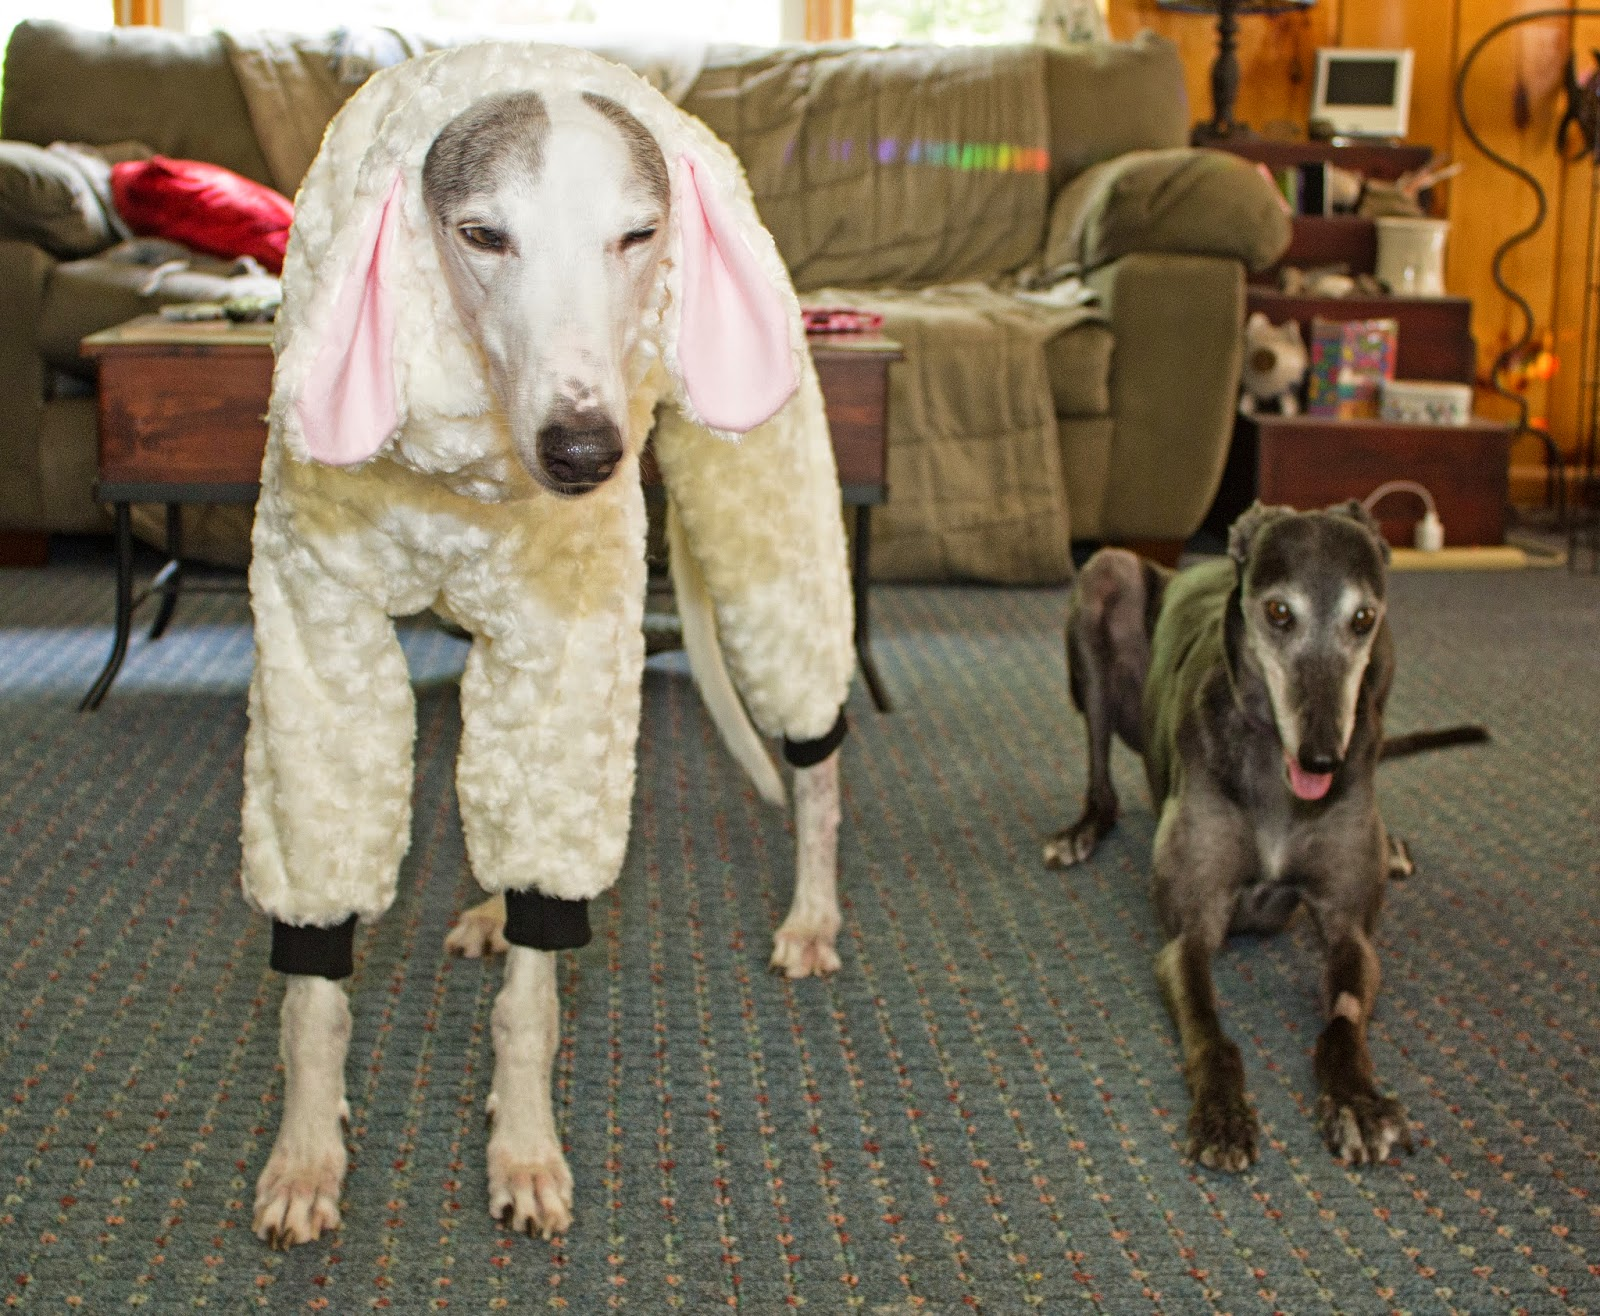 Blue the sheep and Bettina greyhound